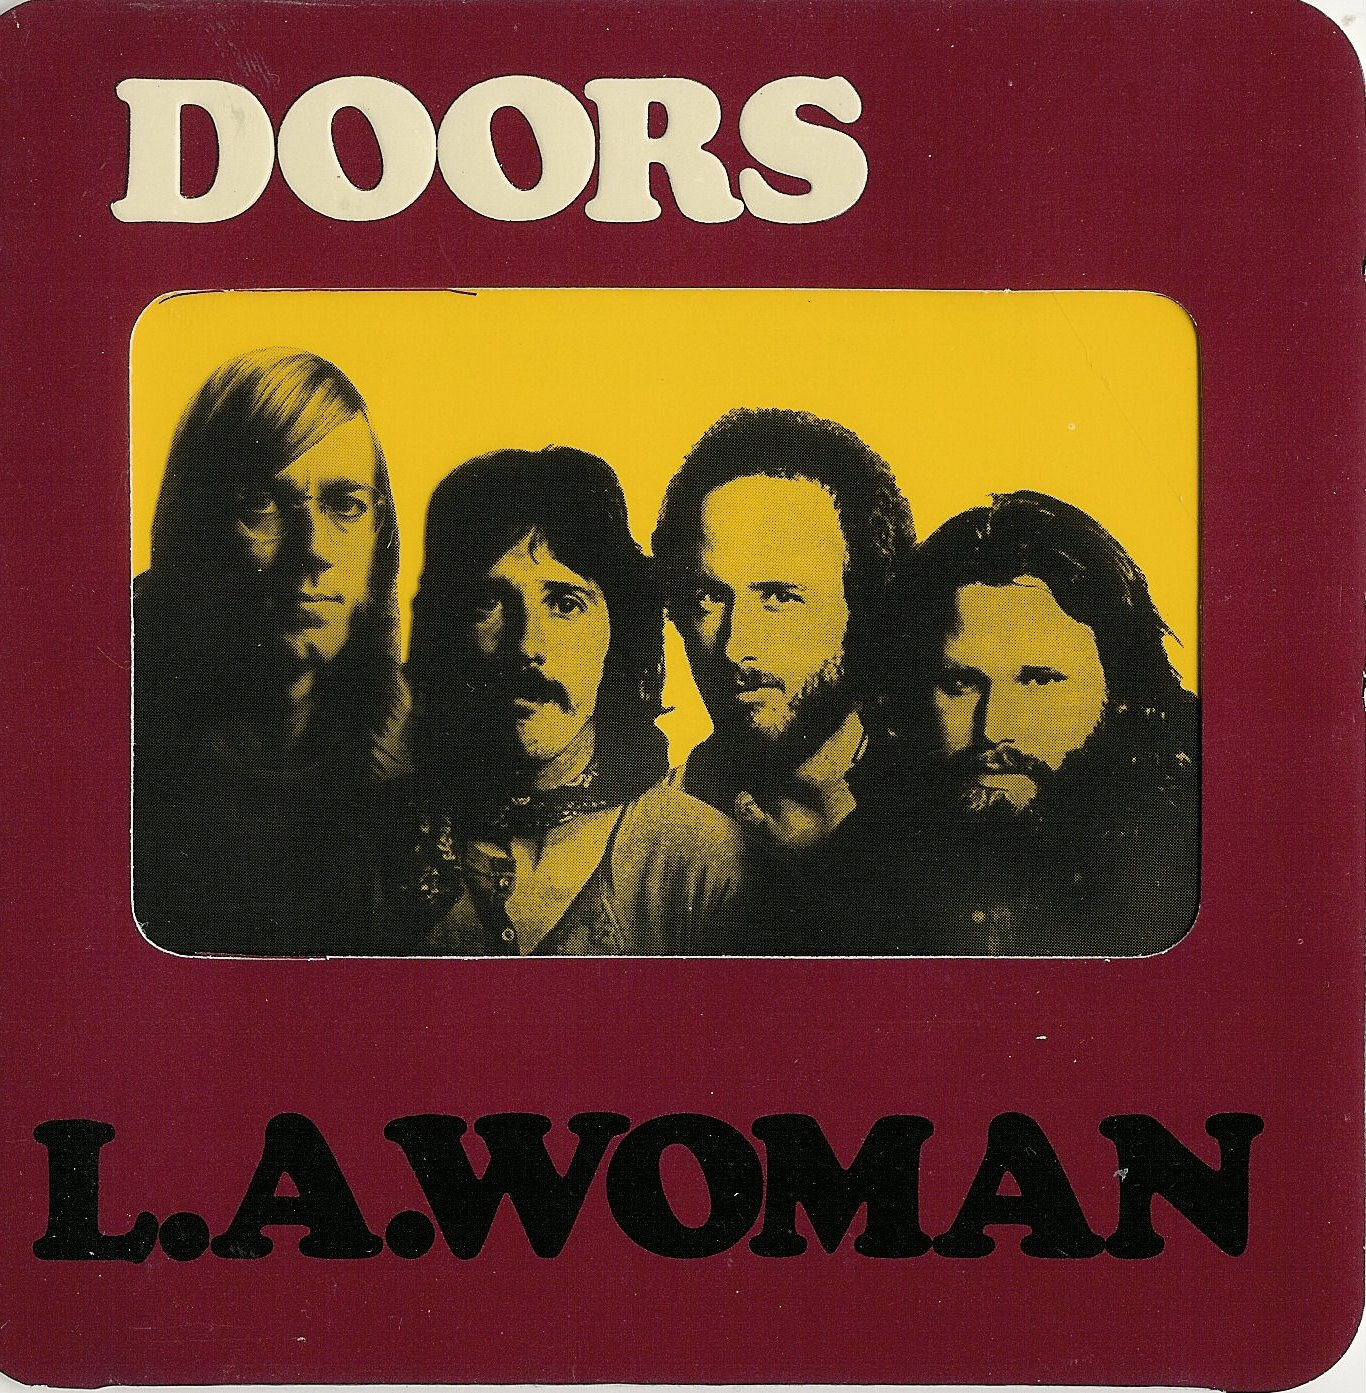 a report on the doors an american rock band The 200 greatest psychedelic albums author: pauldrach these are the 200 greatest psychedelic rock albums of the late '60s/early '70s  (us band) 90: 90.